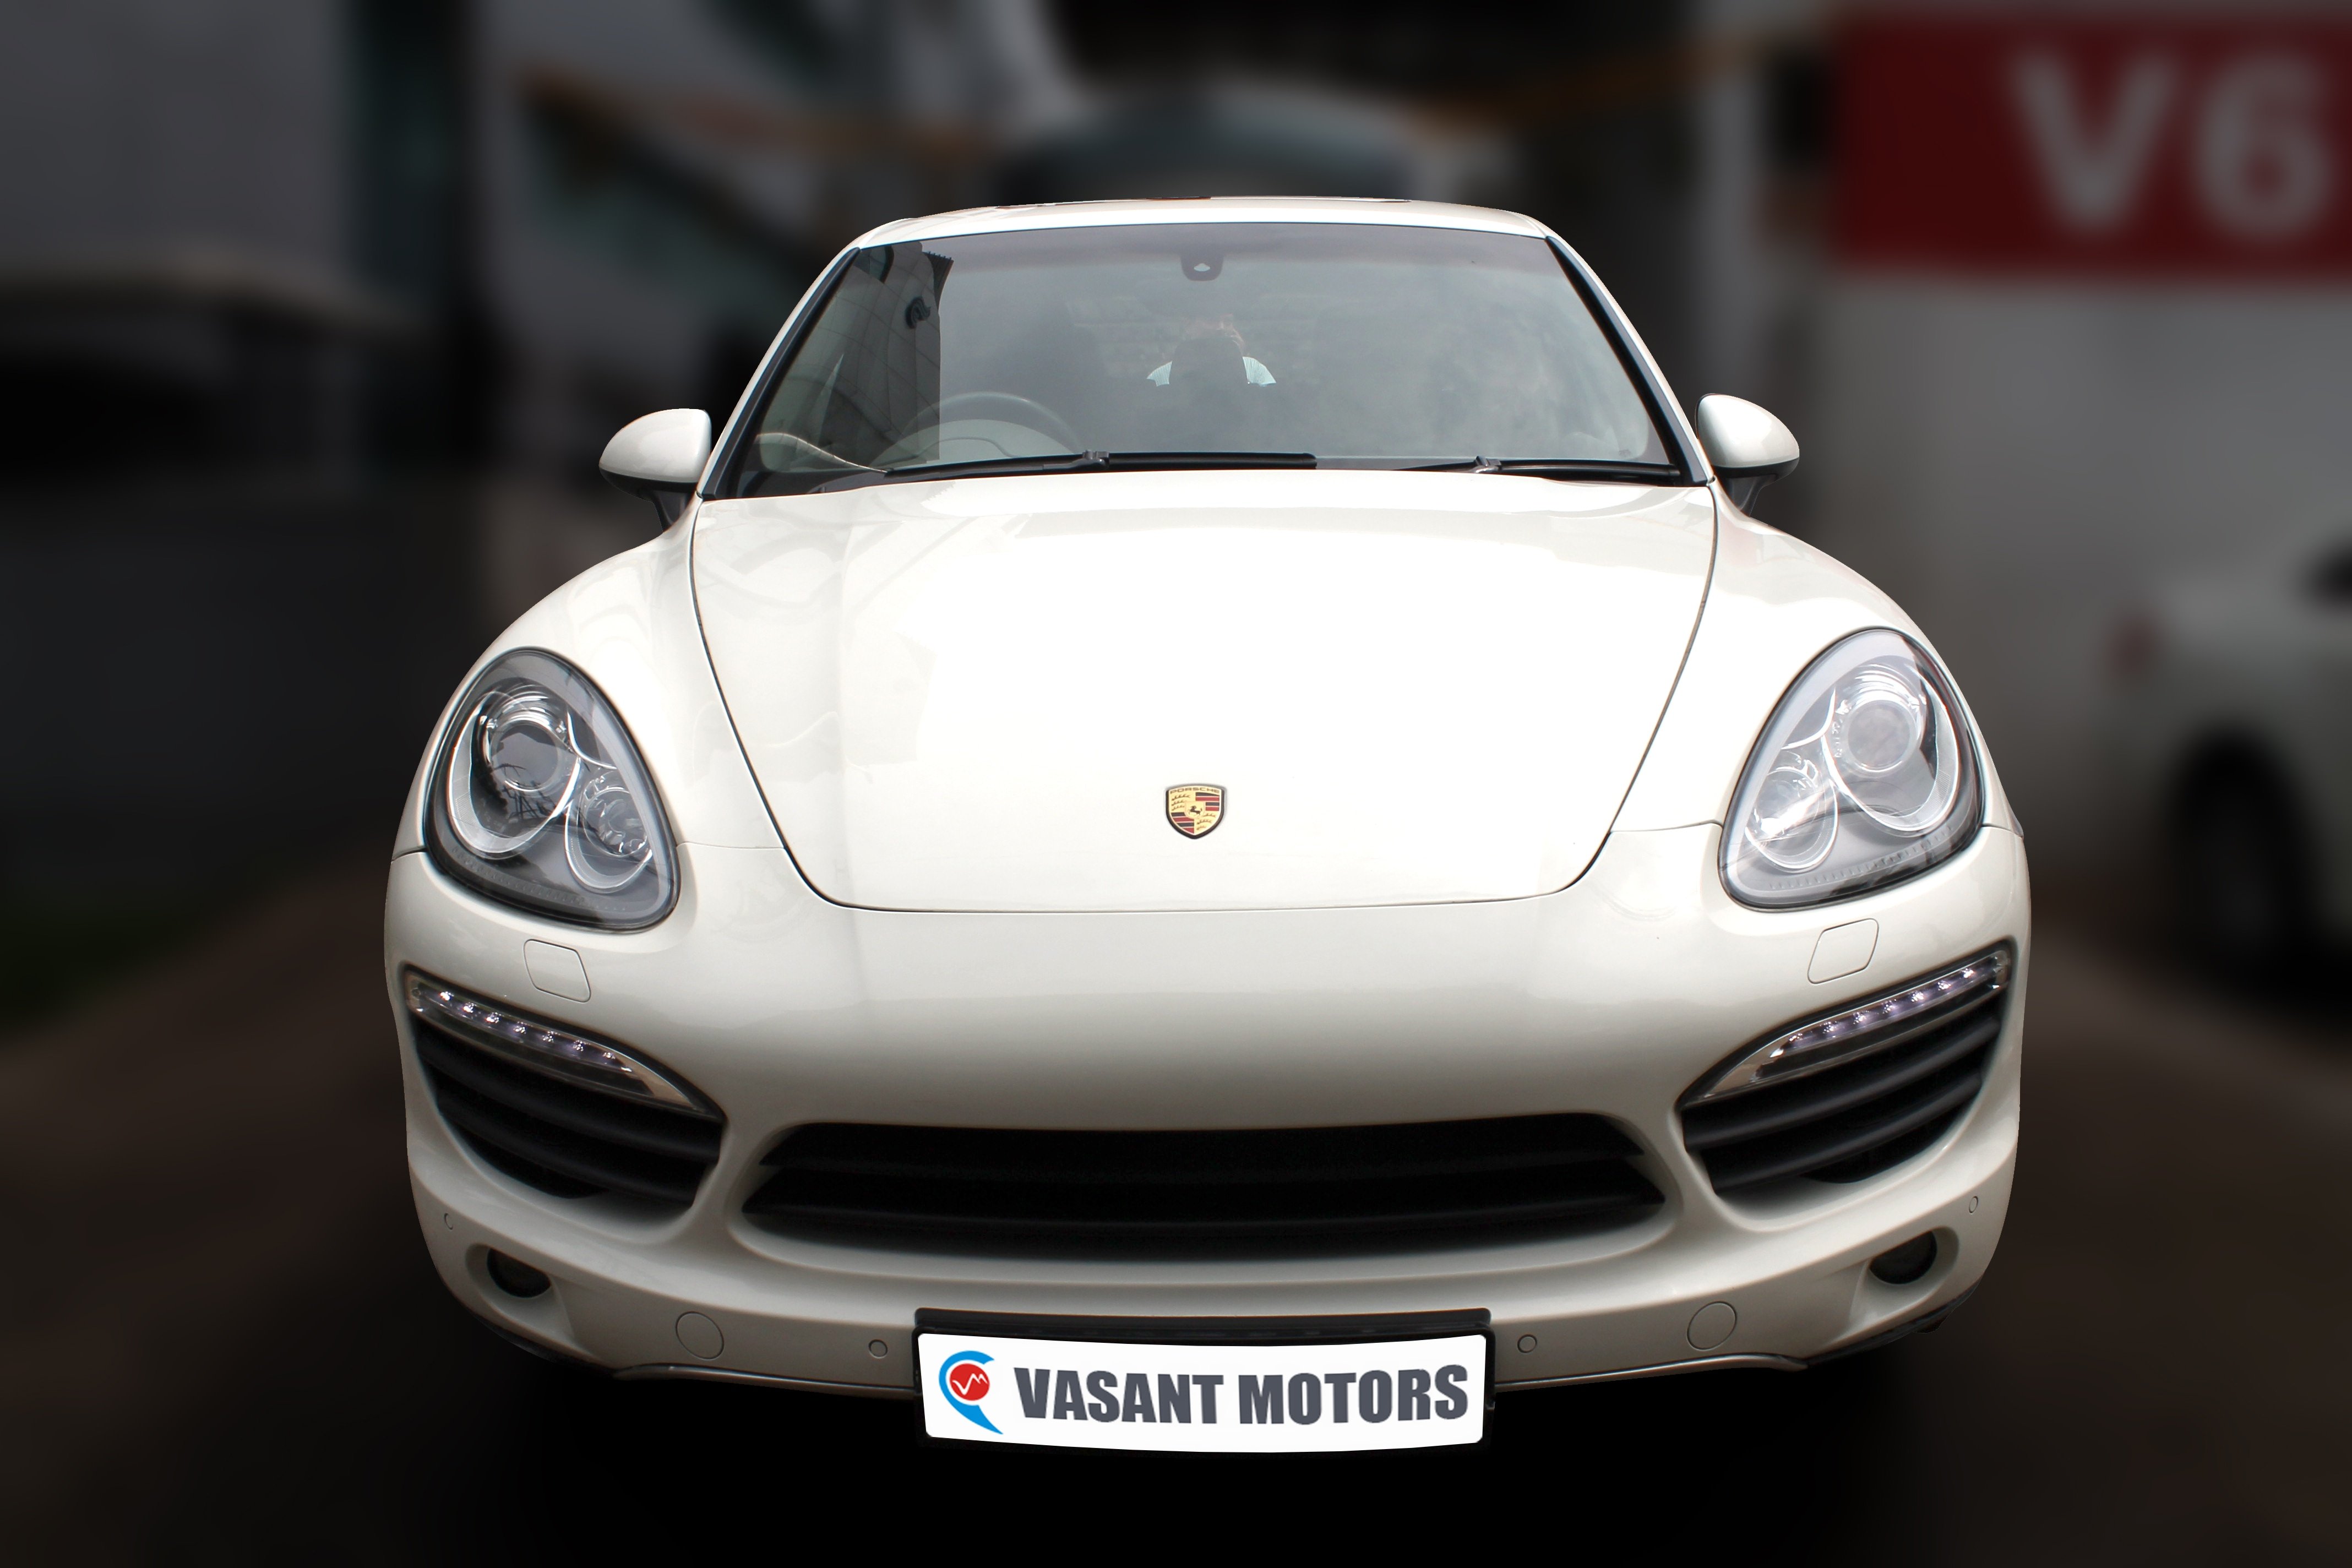 PORSCHE CAYENNE (WHITE COLOR, DIESEL), 2011 model done only 44, 000km in absolute mint condition. For further info call 7569696666